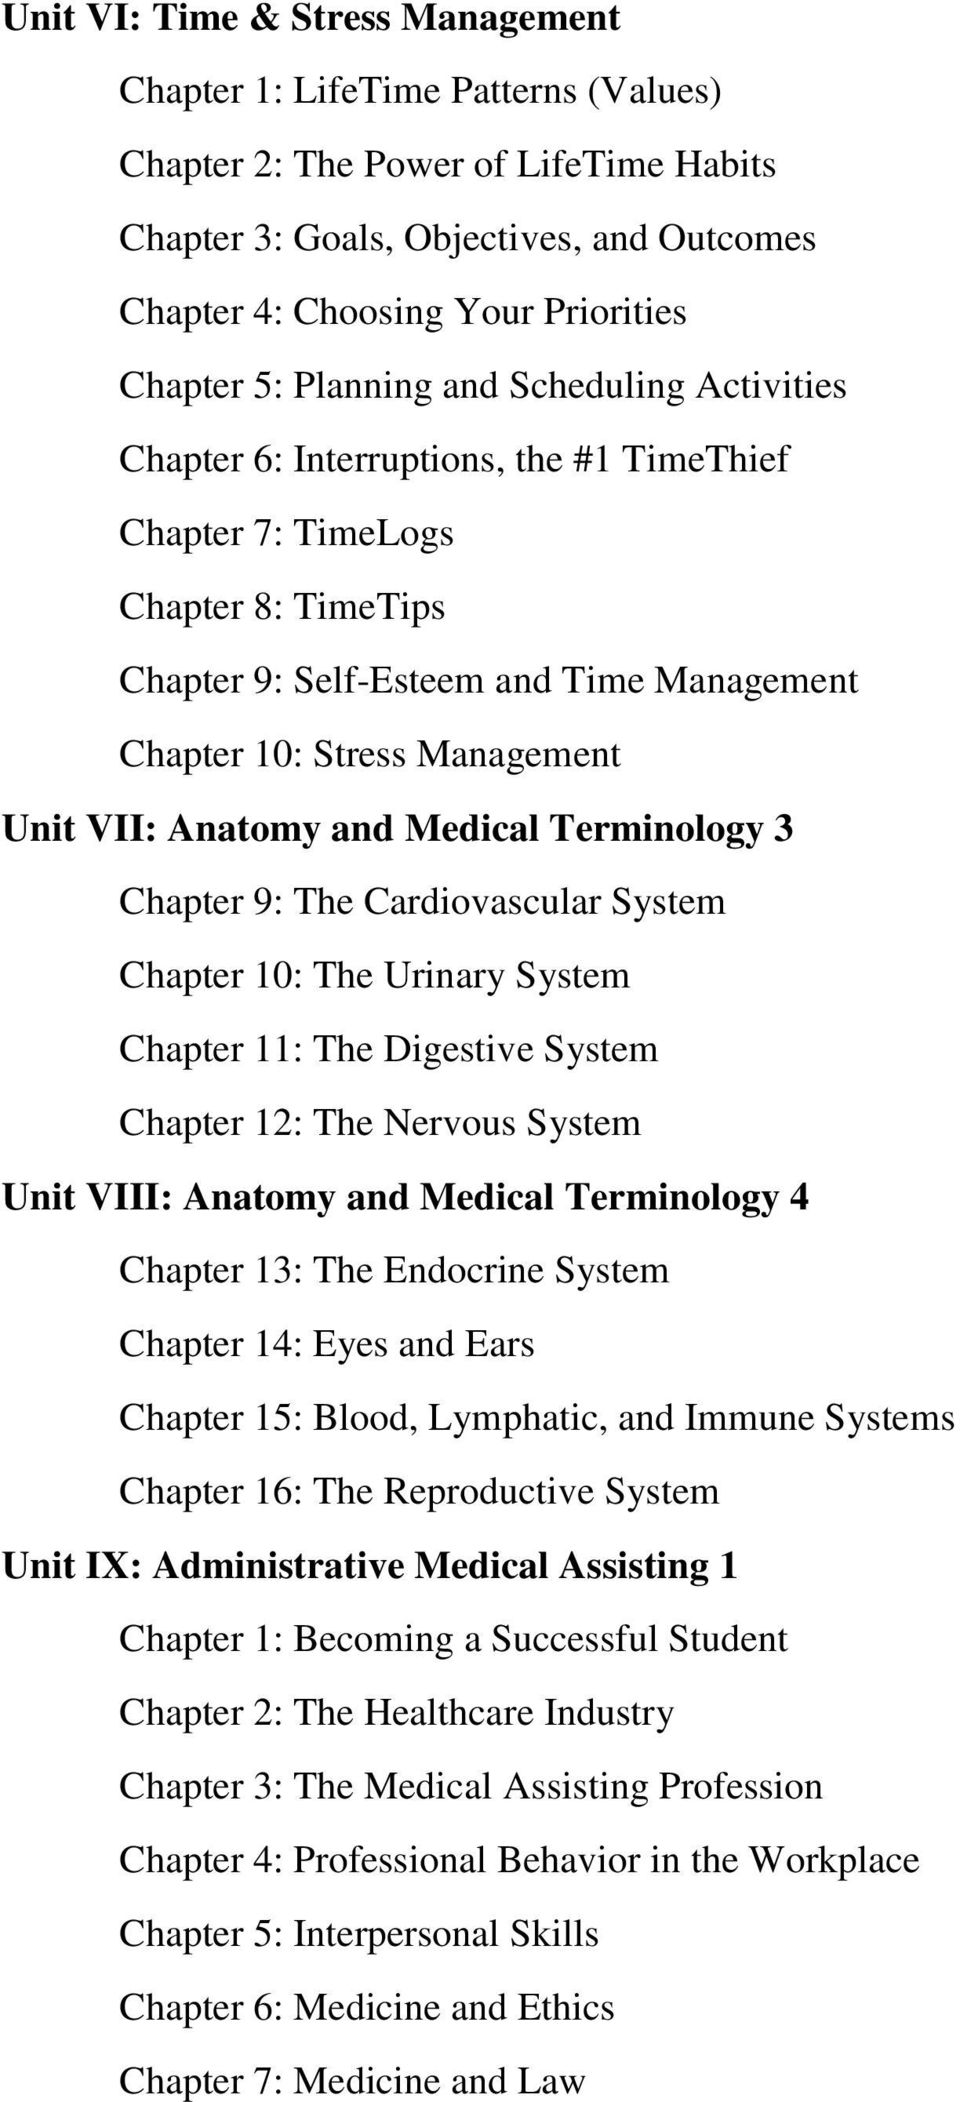 VII: Anatomy and Medical Terminology 3 Chapter 9: The Cardiovascular System Chapter 10: The Urinary System Chapter 11: The Digestive System Chapter 12: The Nervous System Unit VIII: Anatomy and